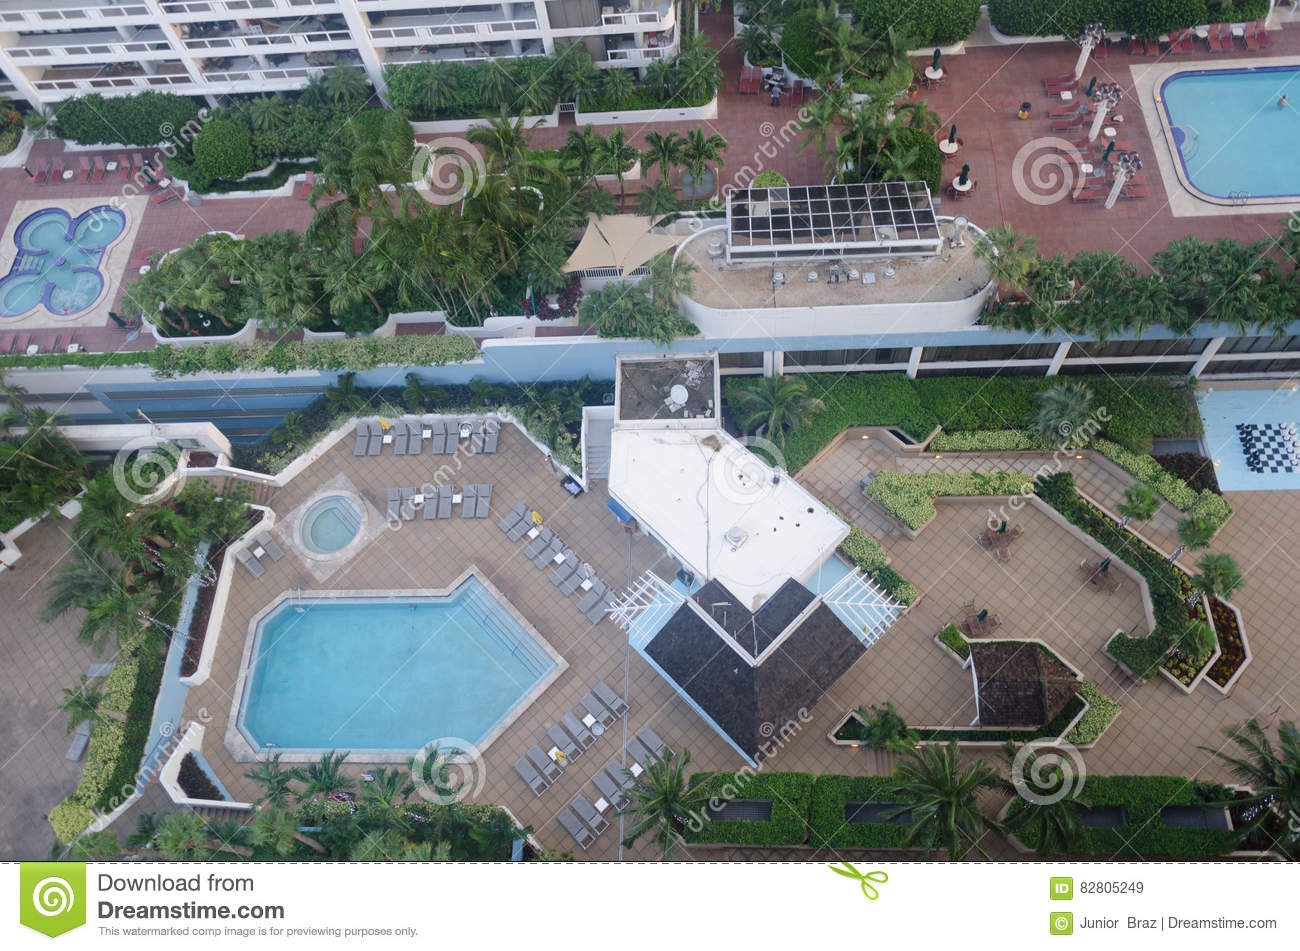 Swimming pool area in a hotel Miami city downtown